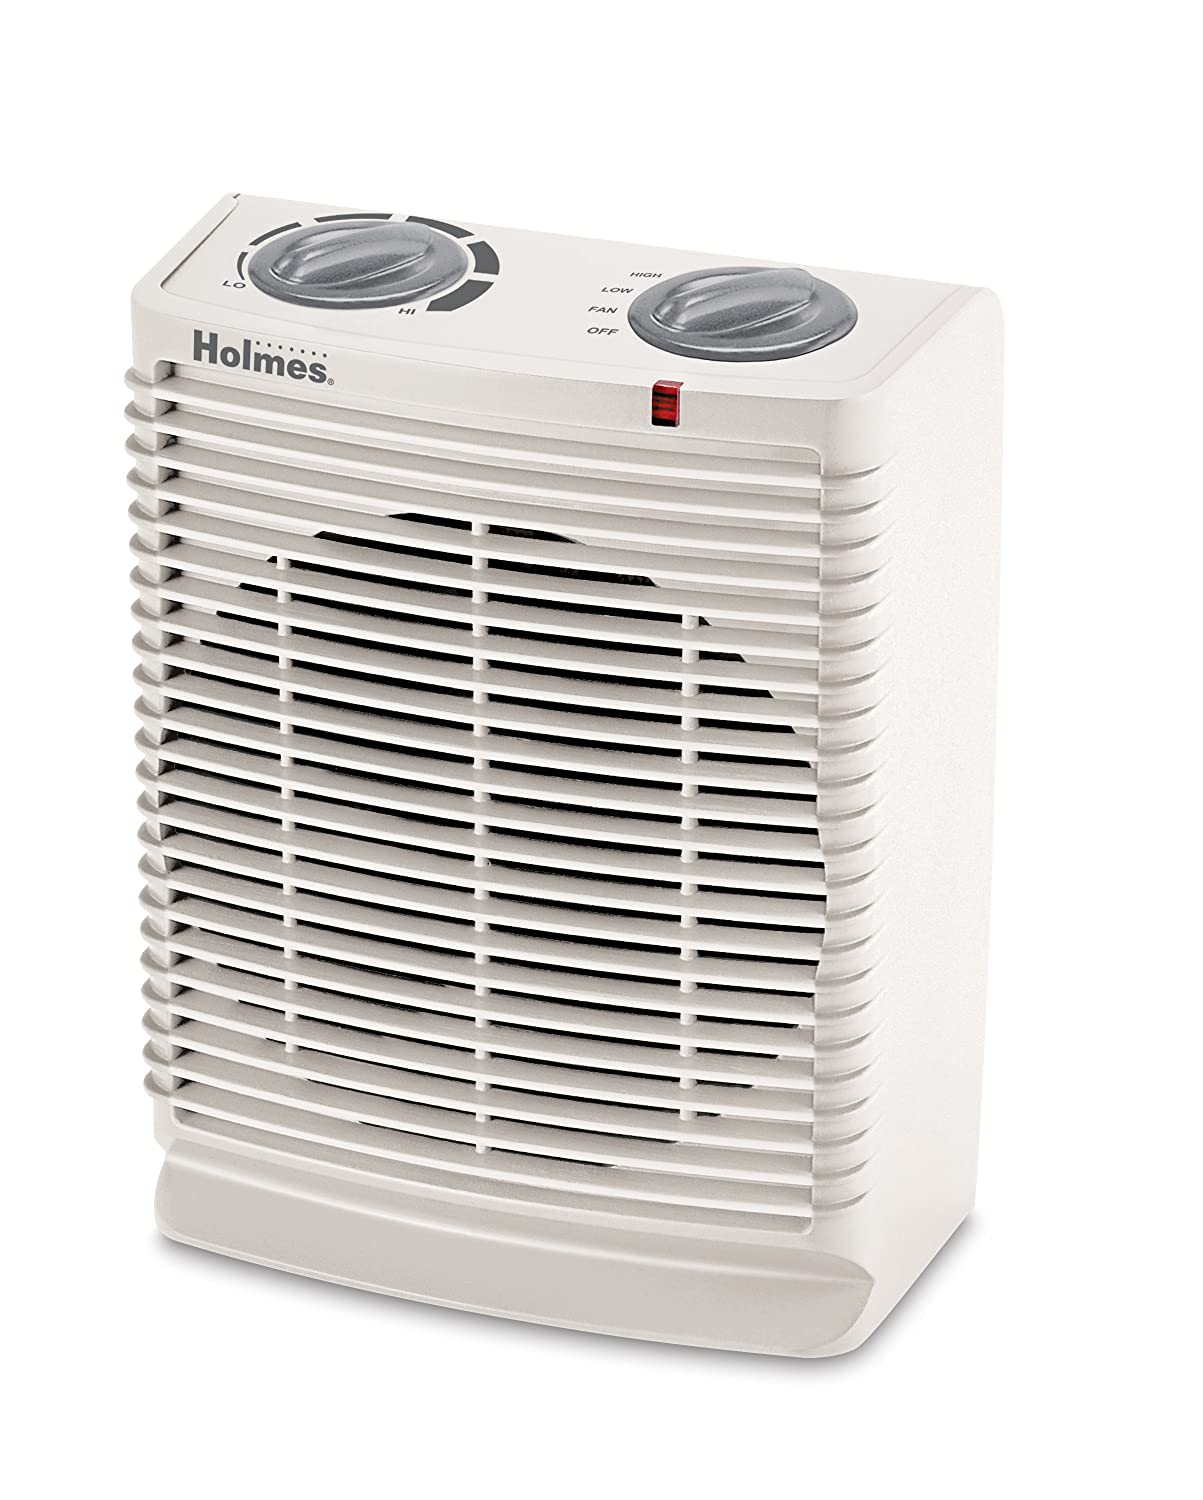 Battery Operated Fans Holmes Hfh111t U Desktop Heater Fan With Comfort Control Thermostat